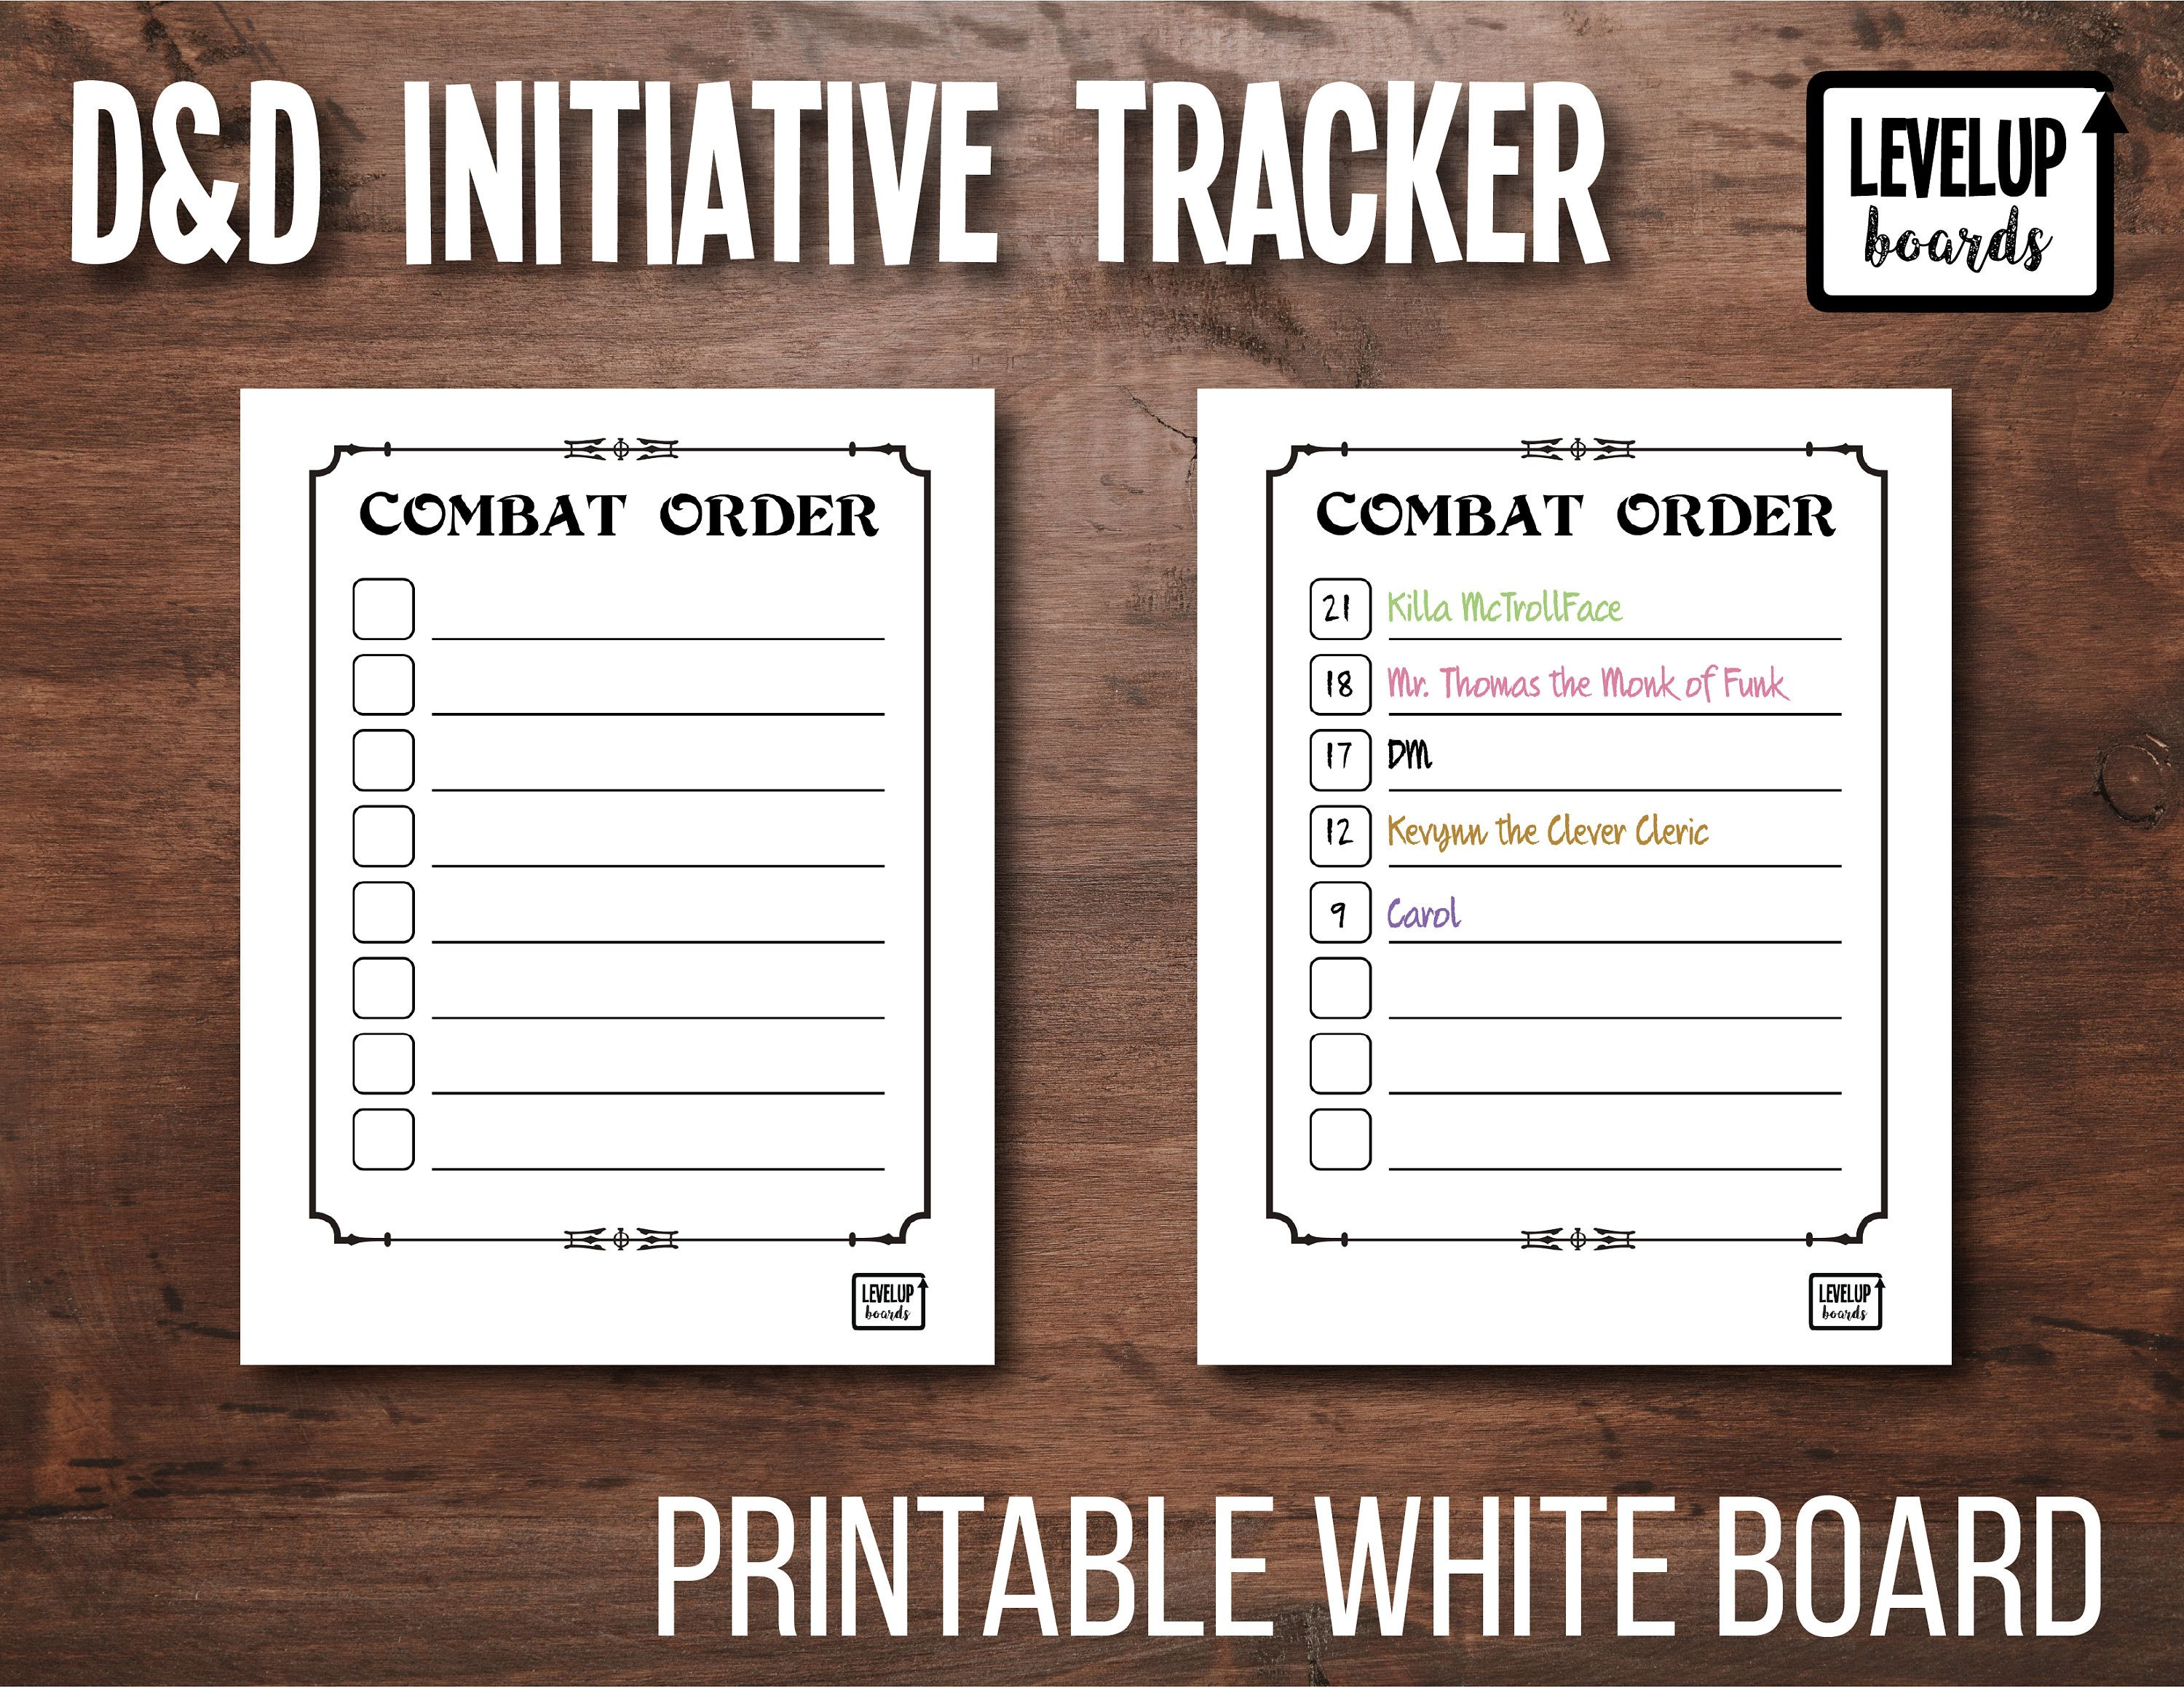 photograph relating to Printable Whiteboard referred to as DD Initiative Tracker DM Battle Purchase Printable Dry